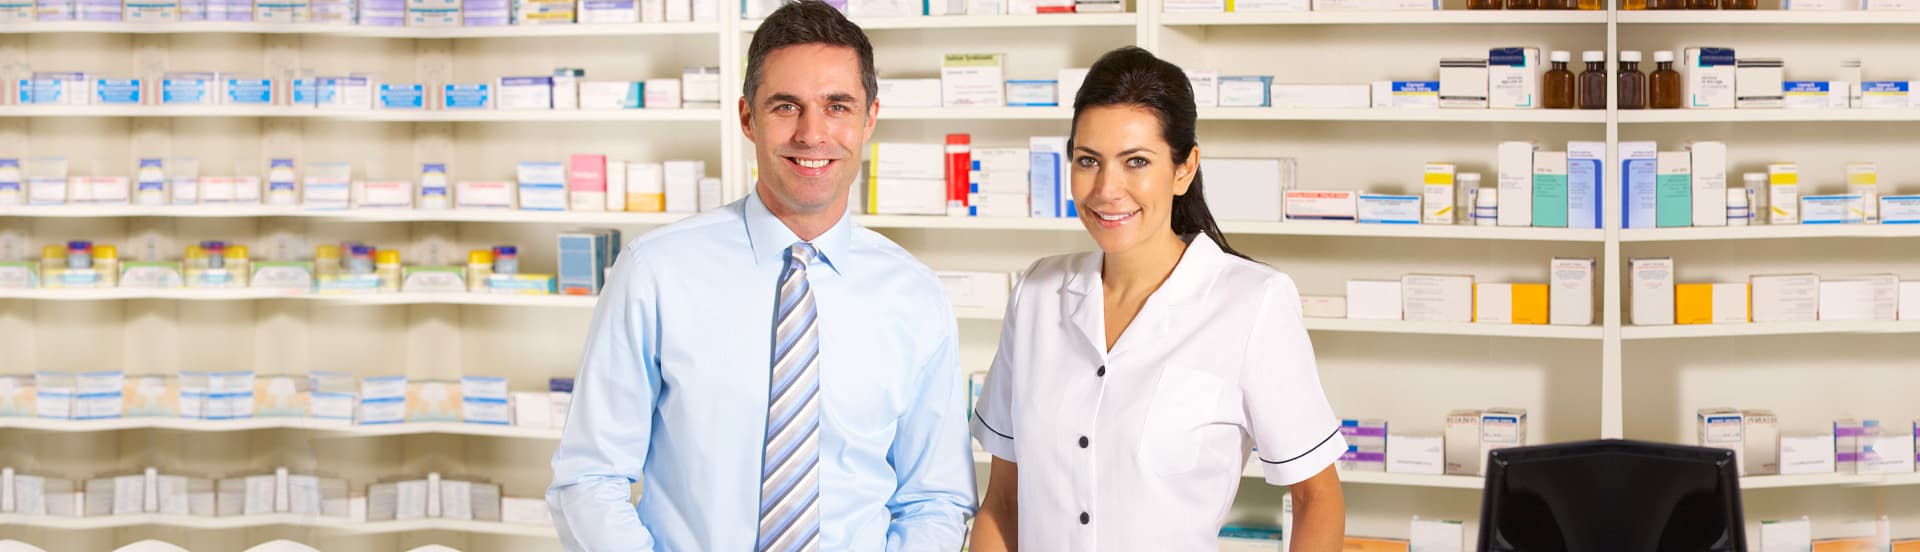 nurse and pharmacist smiling